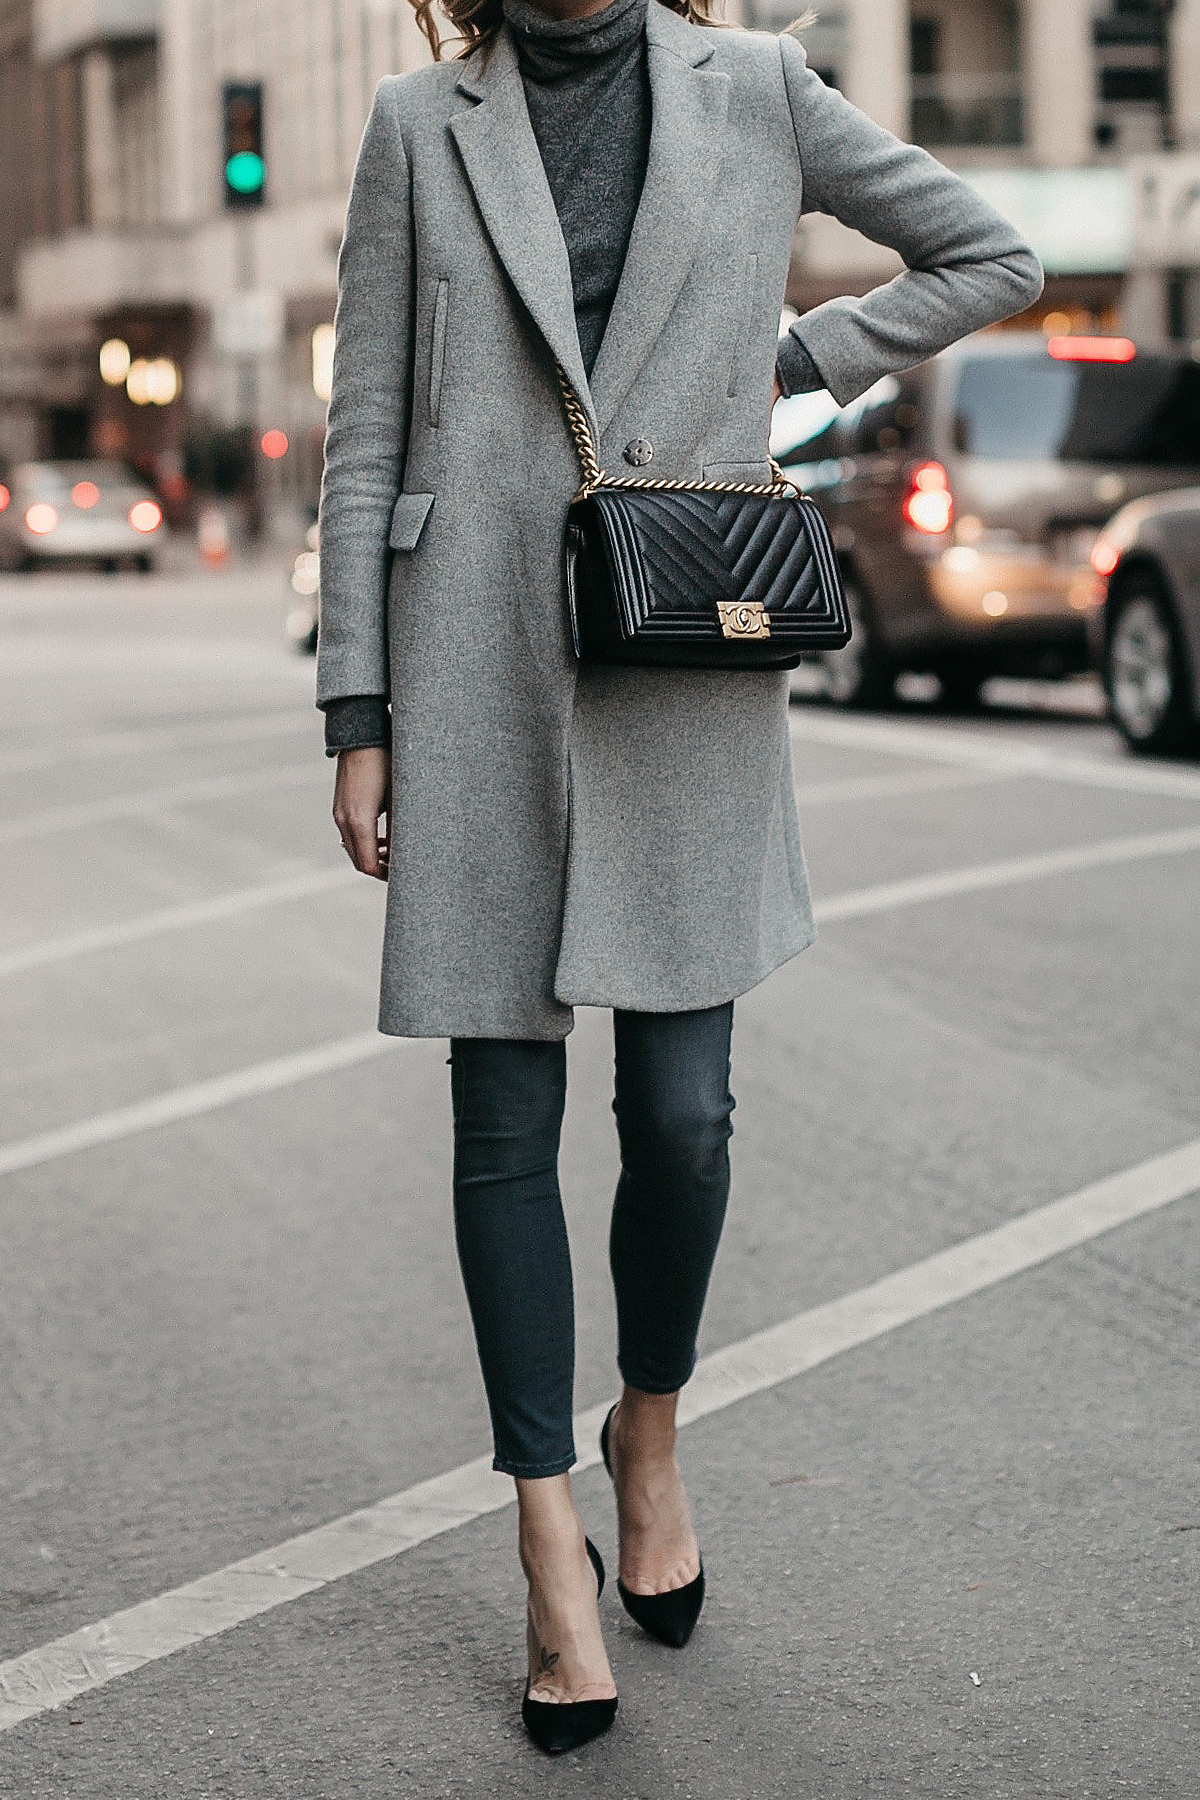 Grey Coat Grey Turtleneck Sweater Grey Skinny Jeans Black Pumps Black Chanel Boy Bag Fashion Jackson Dallas Blogger Fashion Blogger Street Style